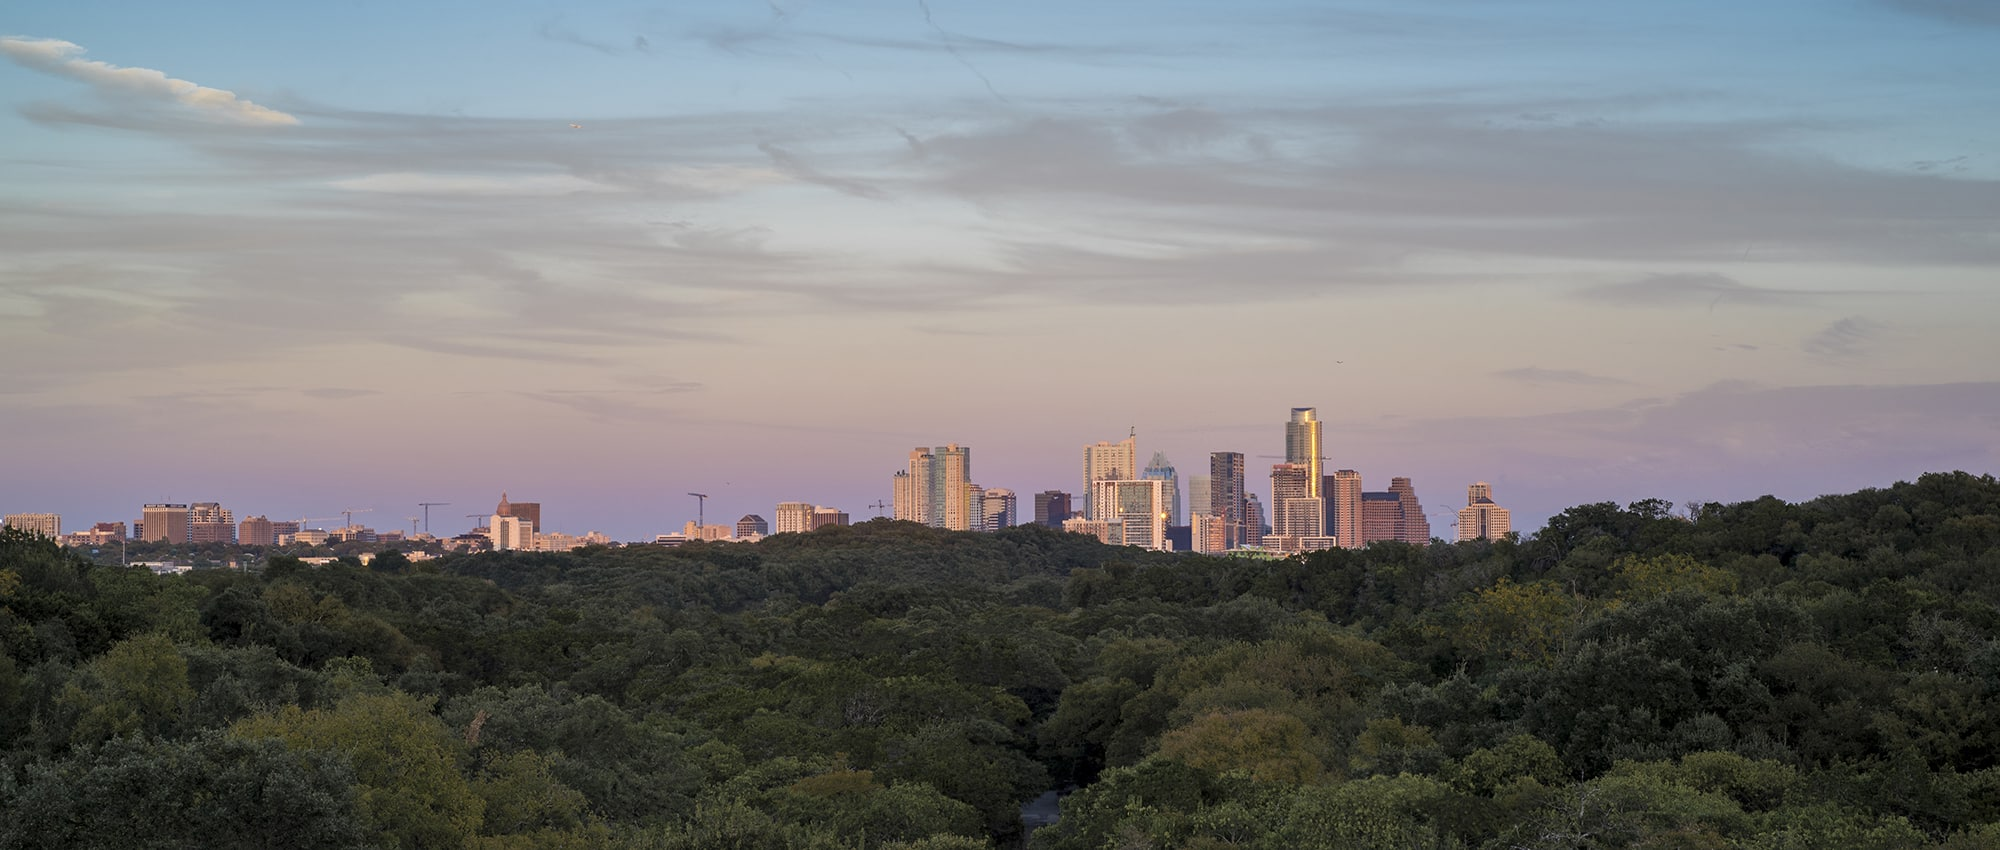 Sublease: Rollingwood Town Center Downtown View | 2500 Bee Caves Rd. in Austin, TX